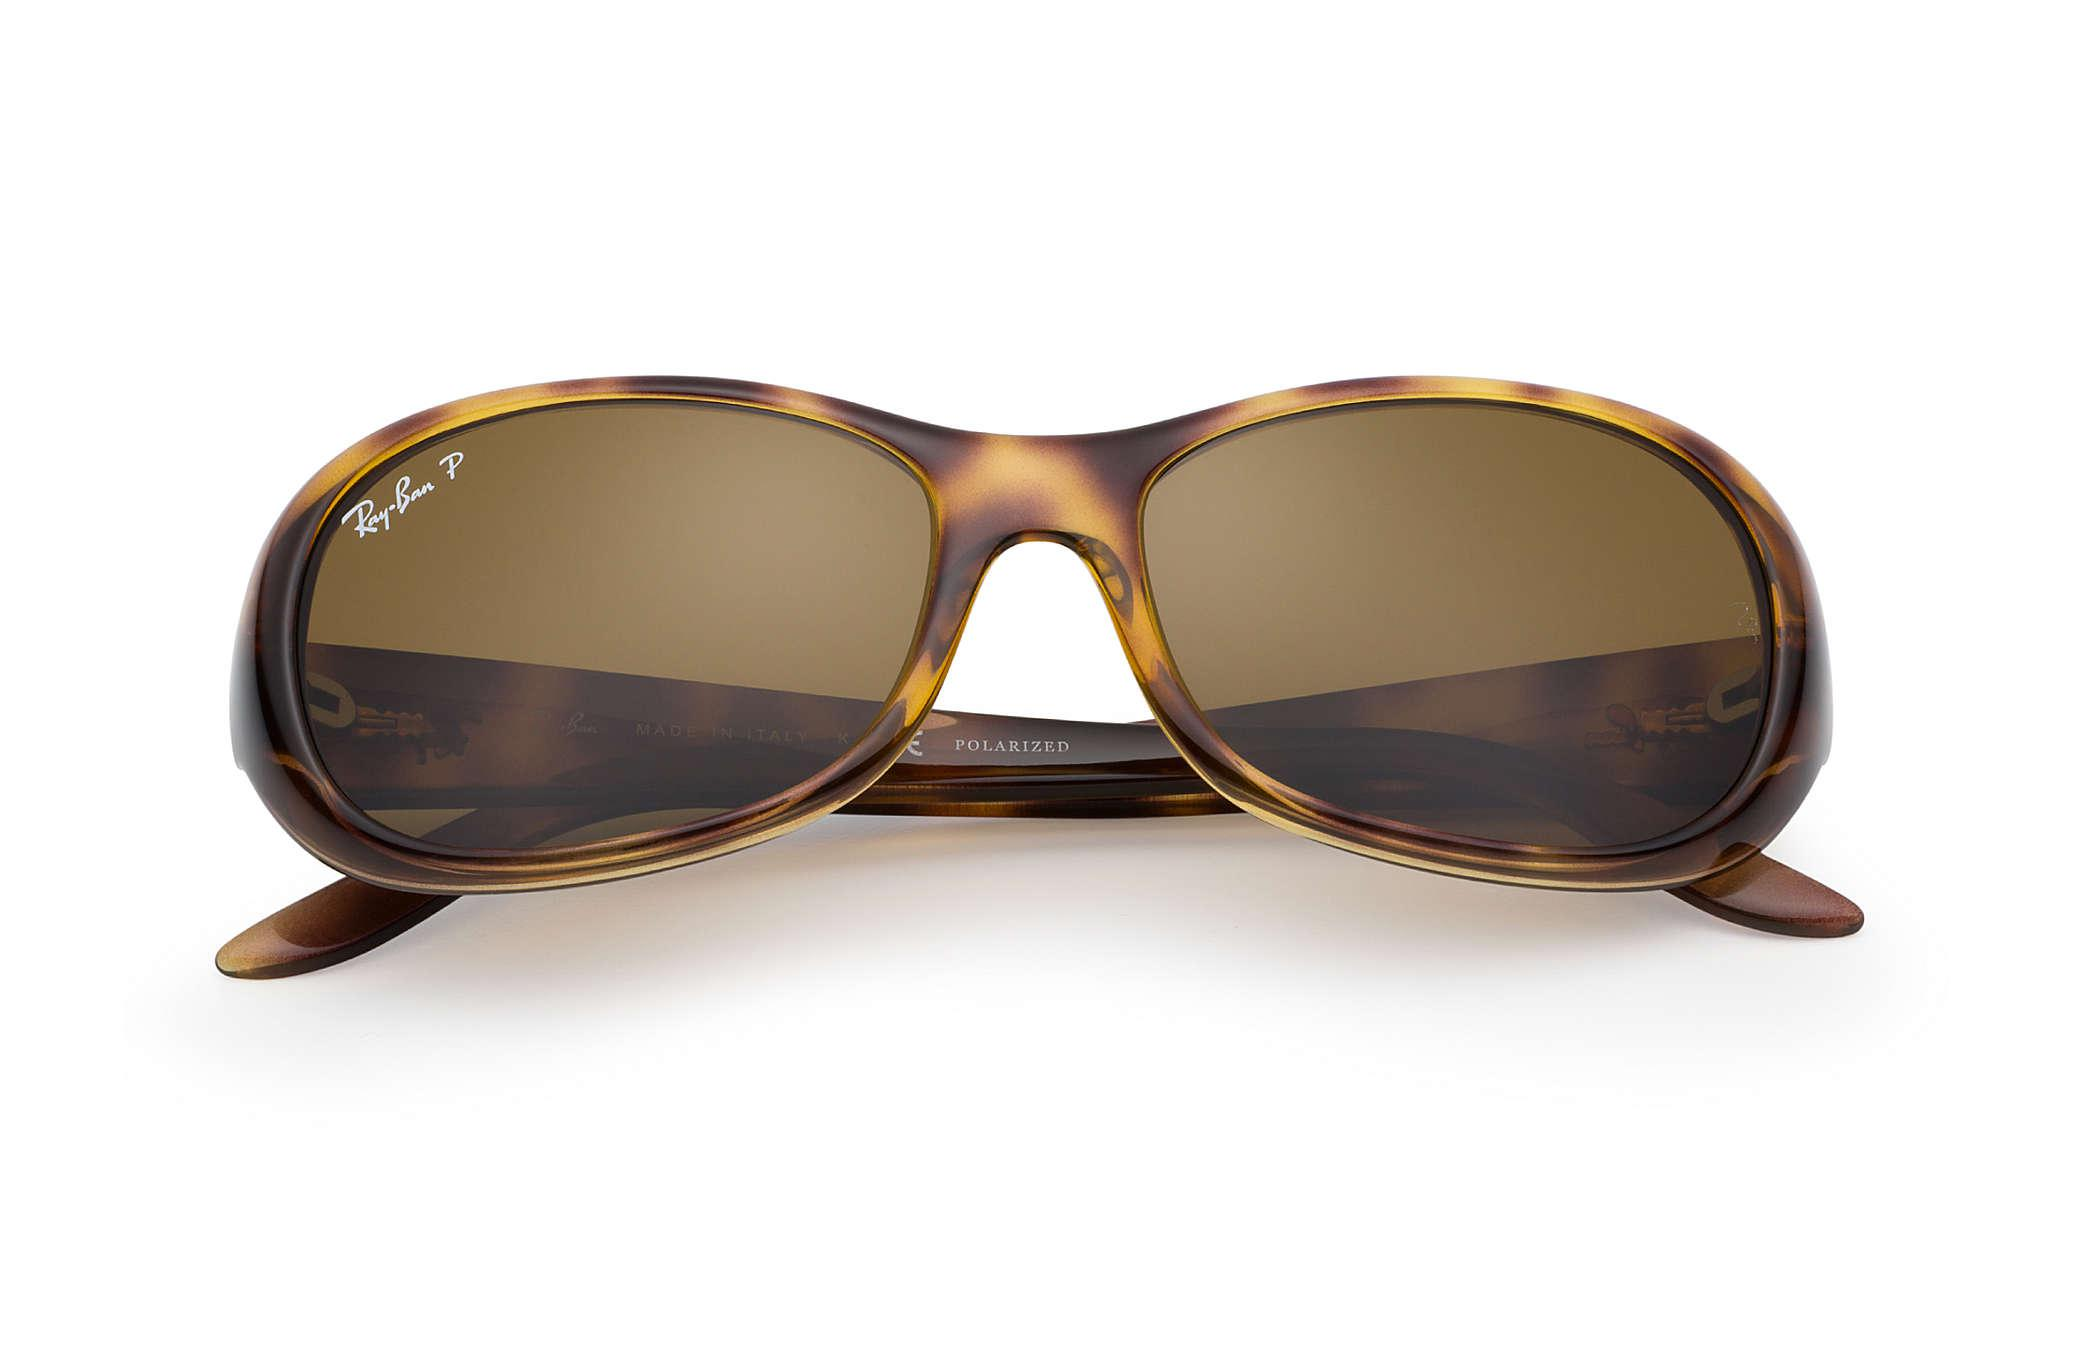 46e9d2d668 Ray-Ban Rb4061 in Brown - Lyst